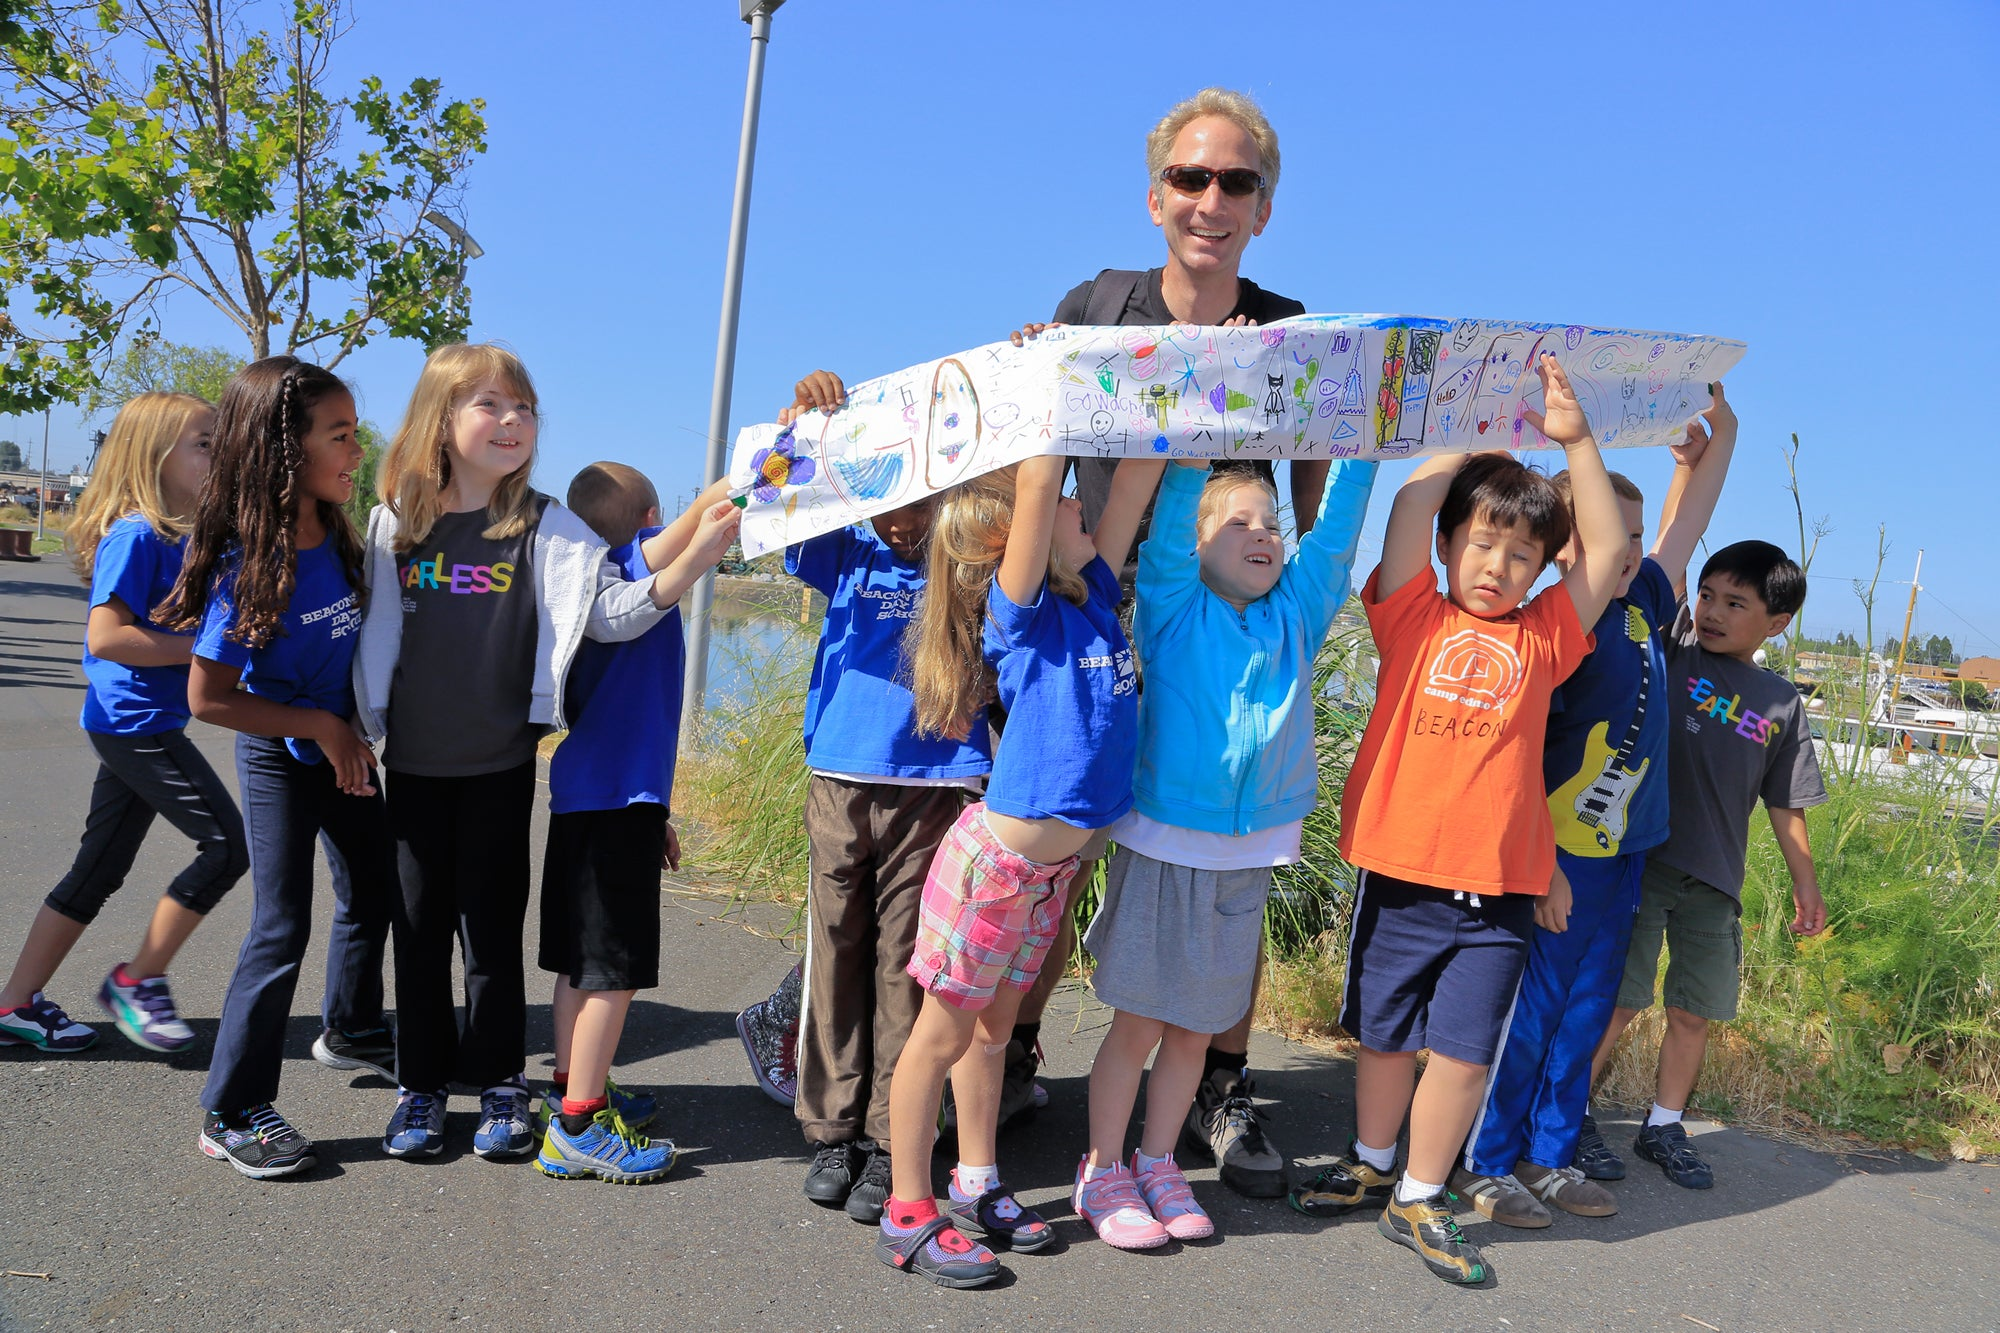 Beacon Day School students proudly display their artwork in support of the Bay Trail; Kurt Schwabe pauses for a photo op with the kids before resuming his 30-day trek around the San Francisco Bay.